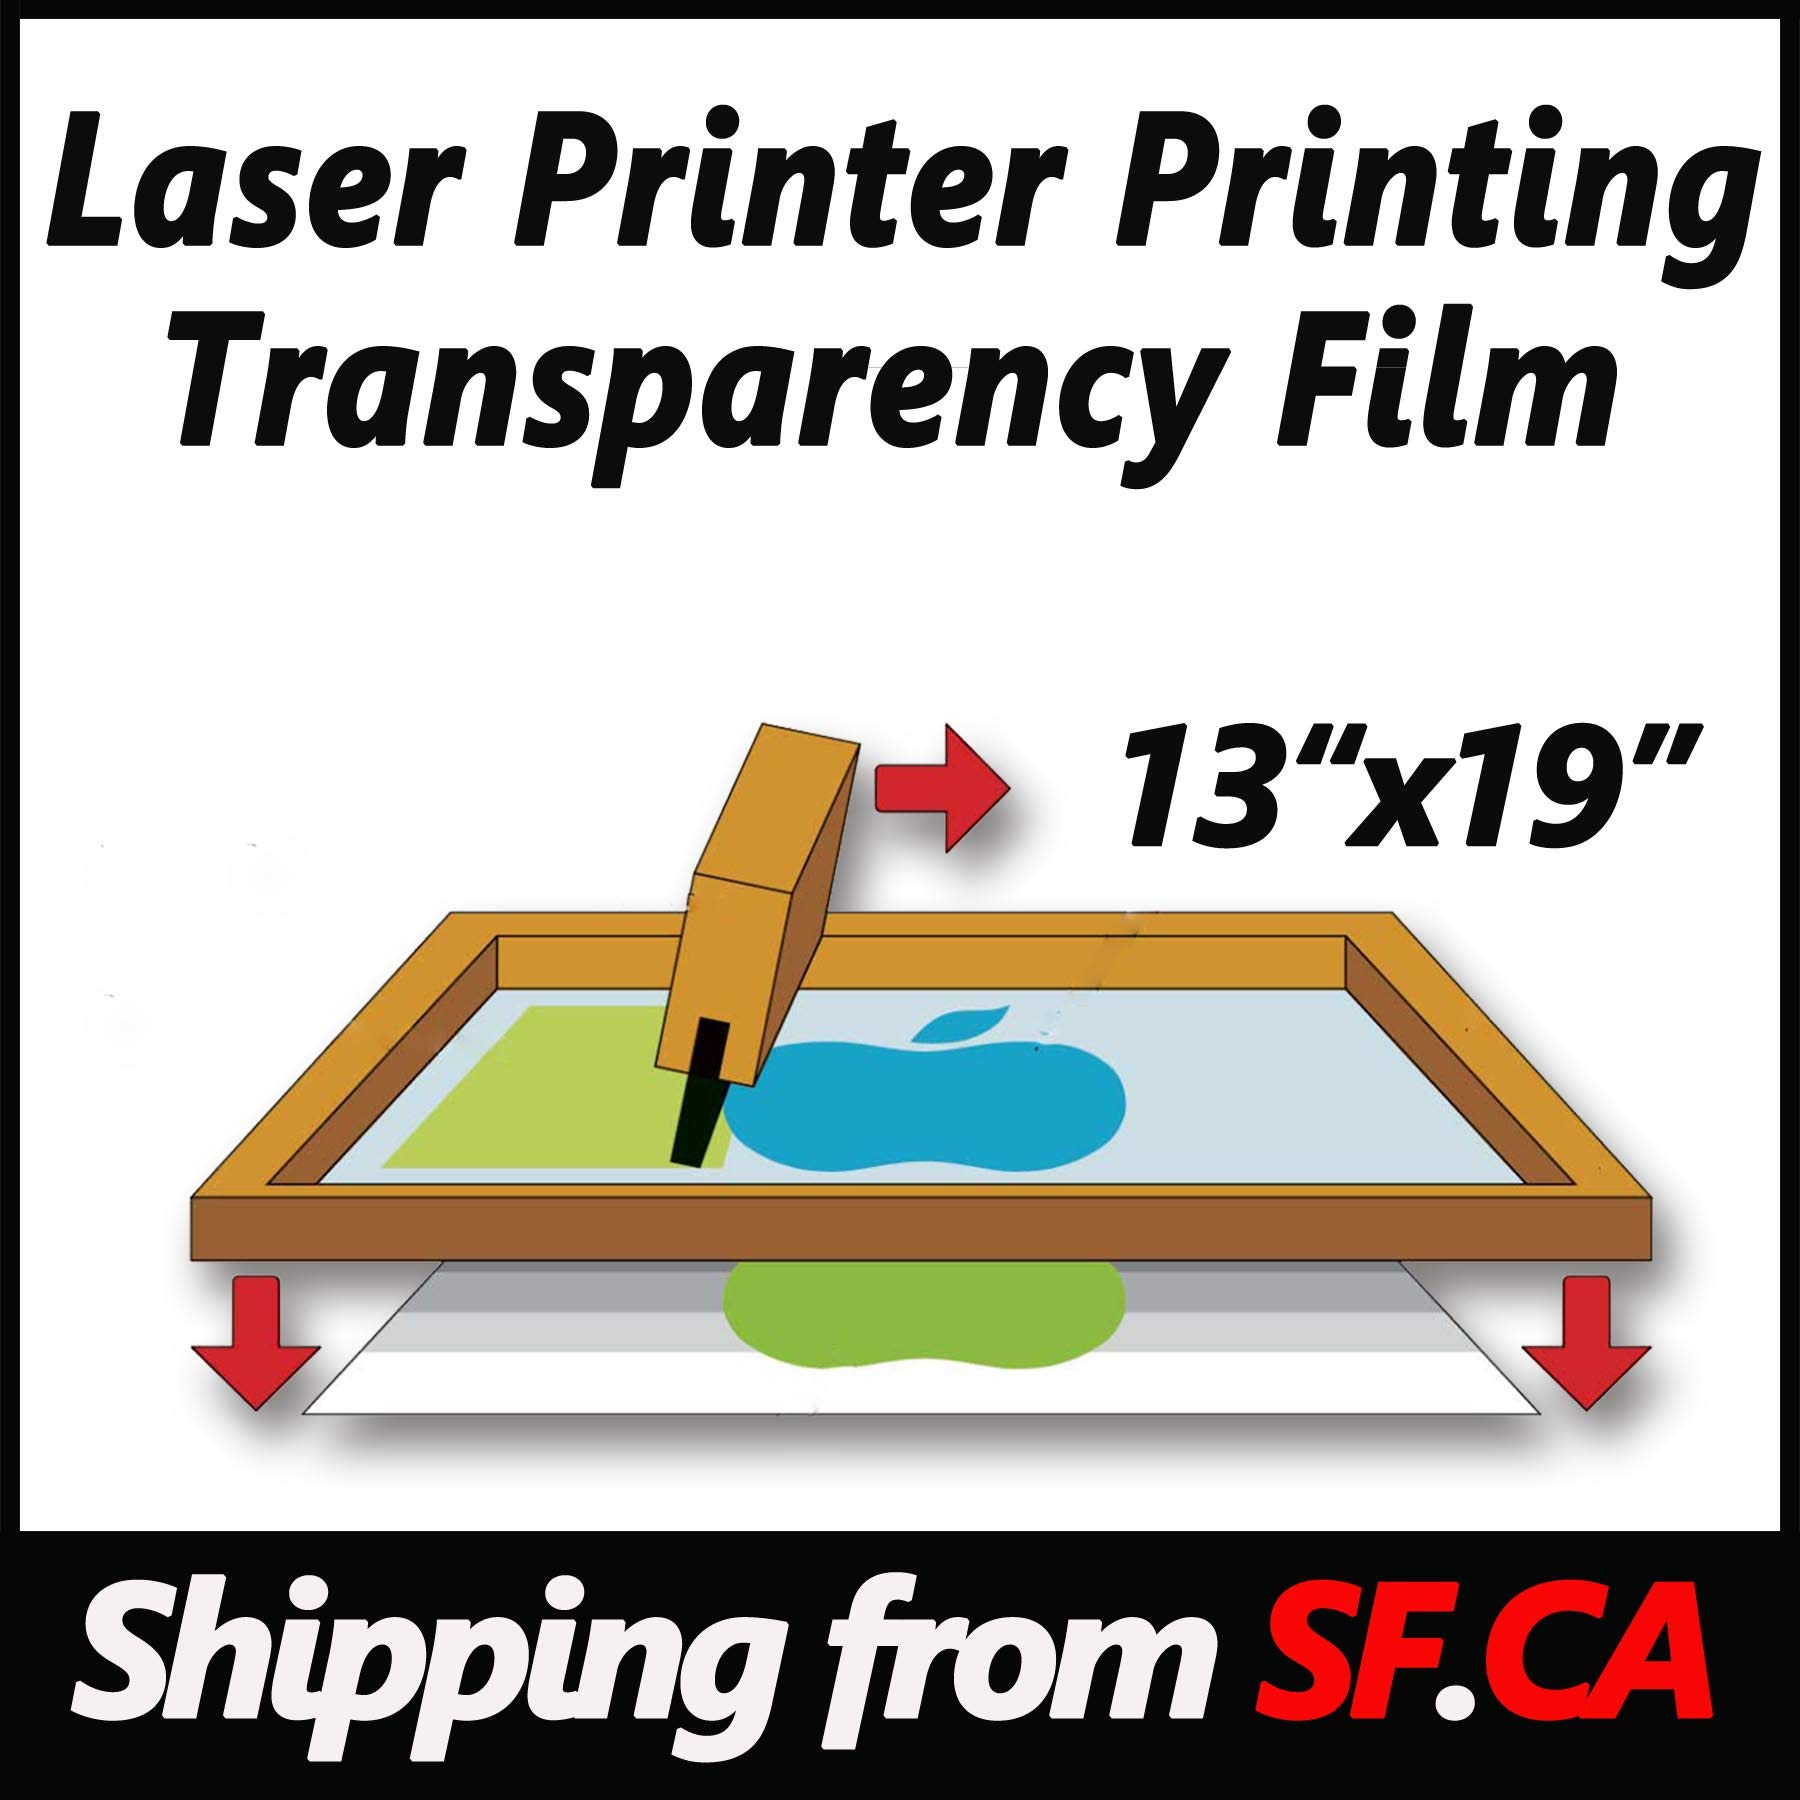 50 sheets,13''x19'',Laser Printer Printing Transparency Film for Silk Screen Printing for Laser HP,Canon,Brother,OKI,EPSON Printers